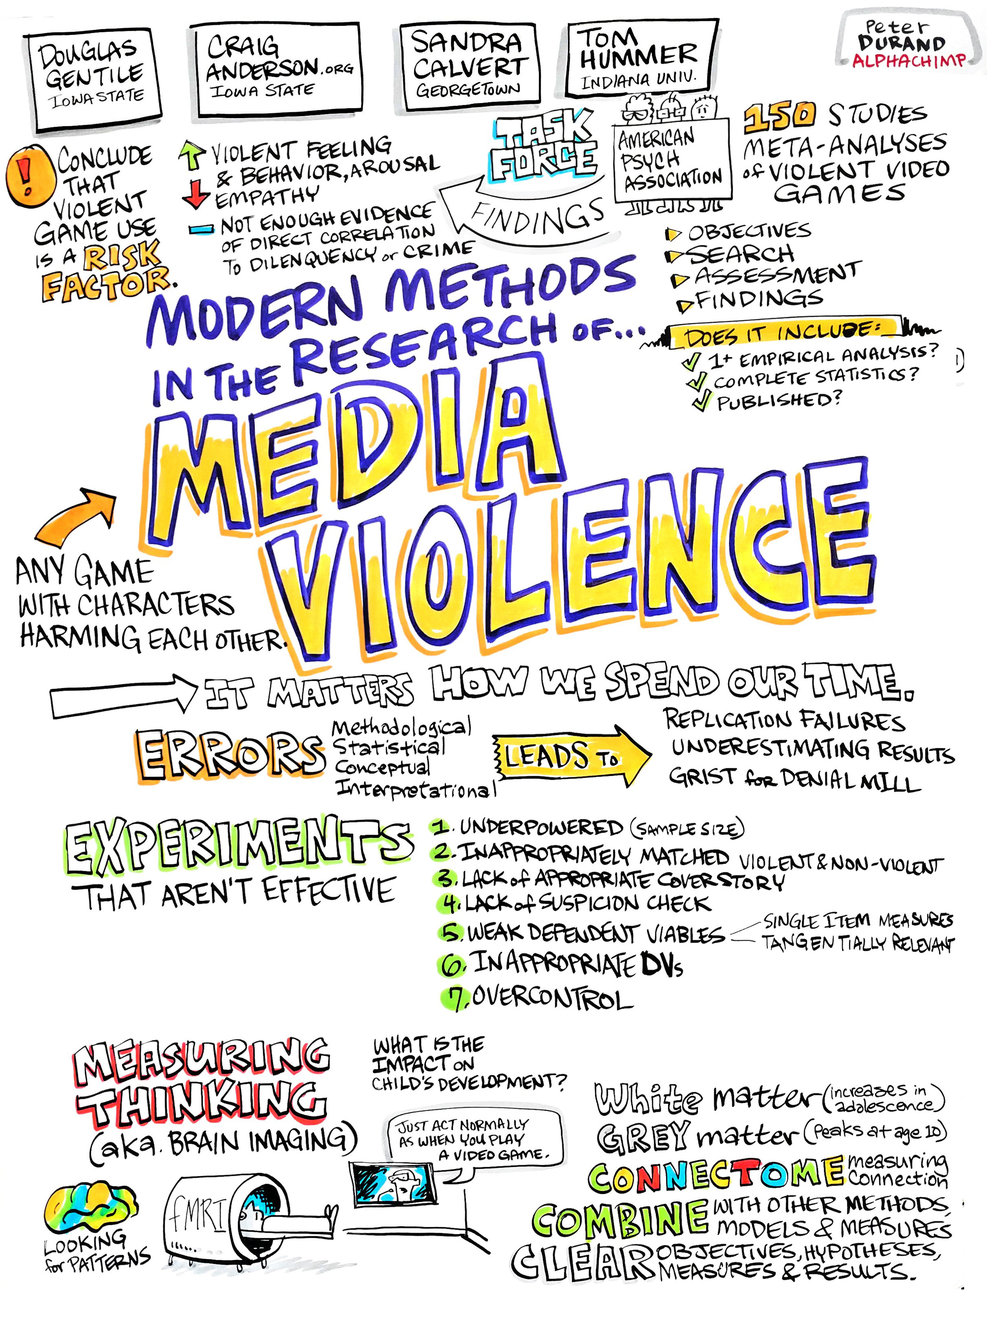 Modern Methods in the Study of Media Violence